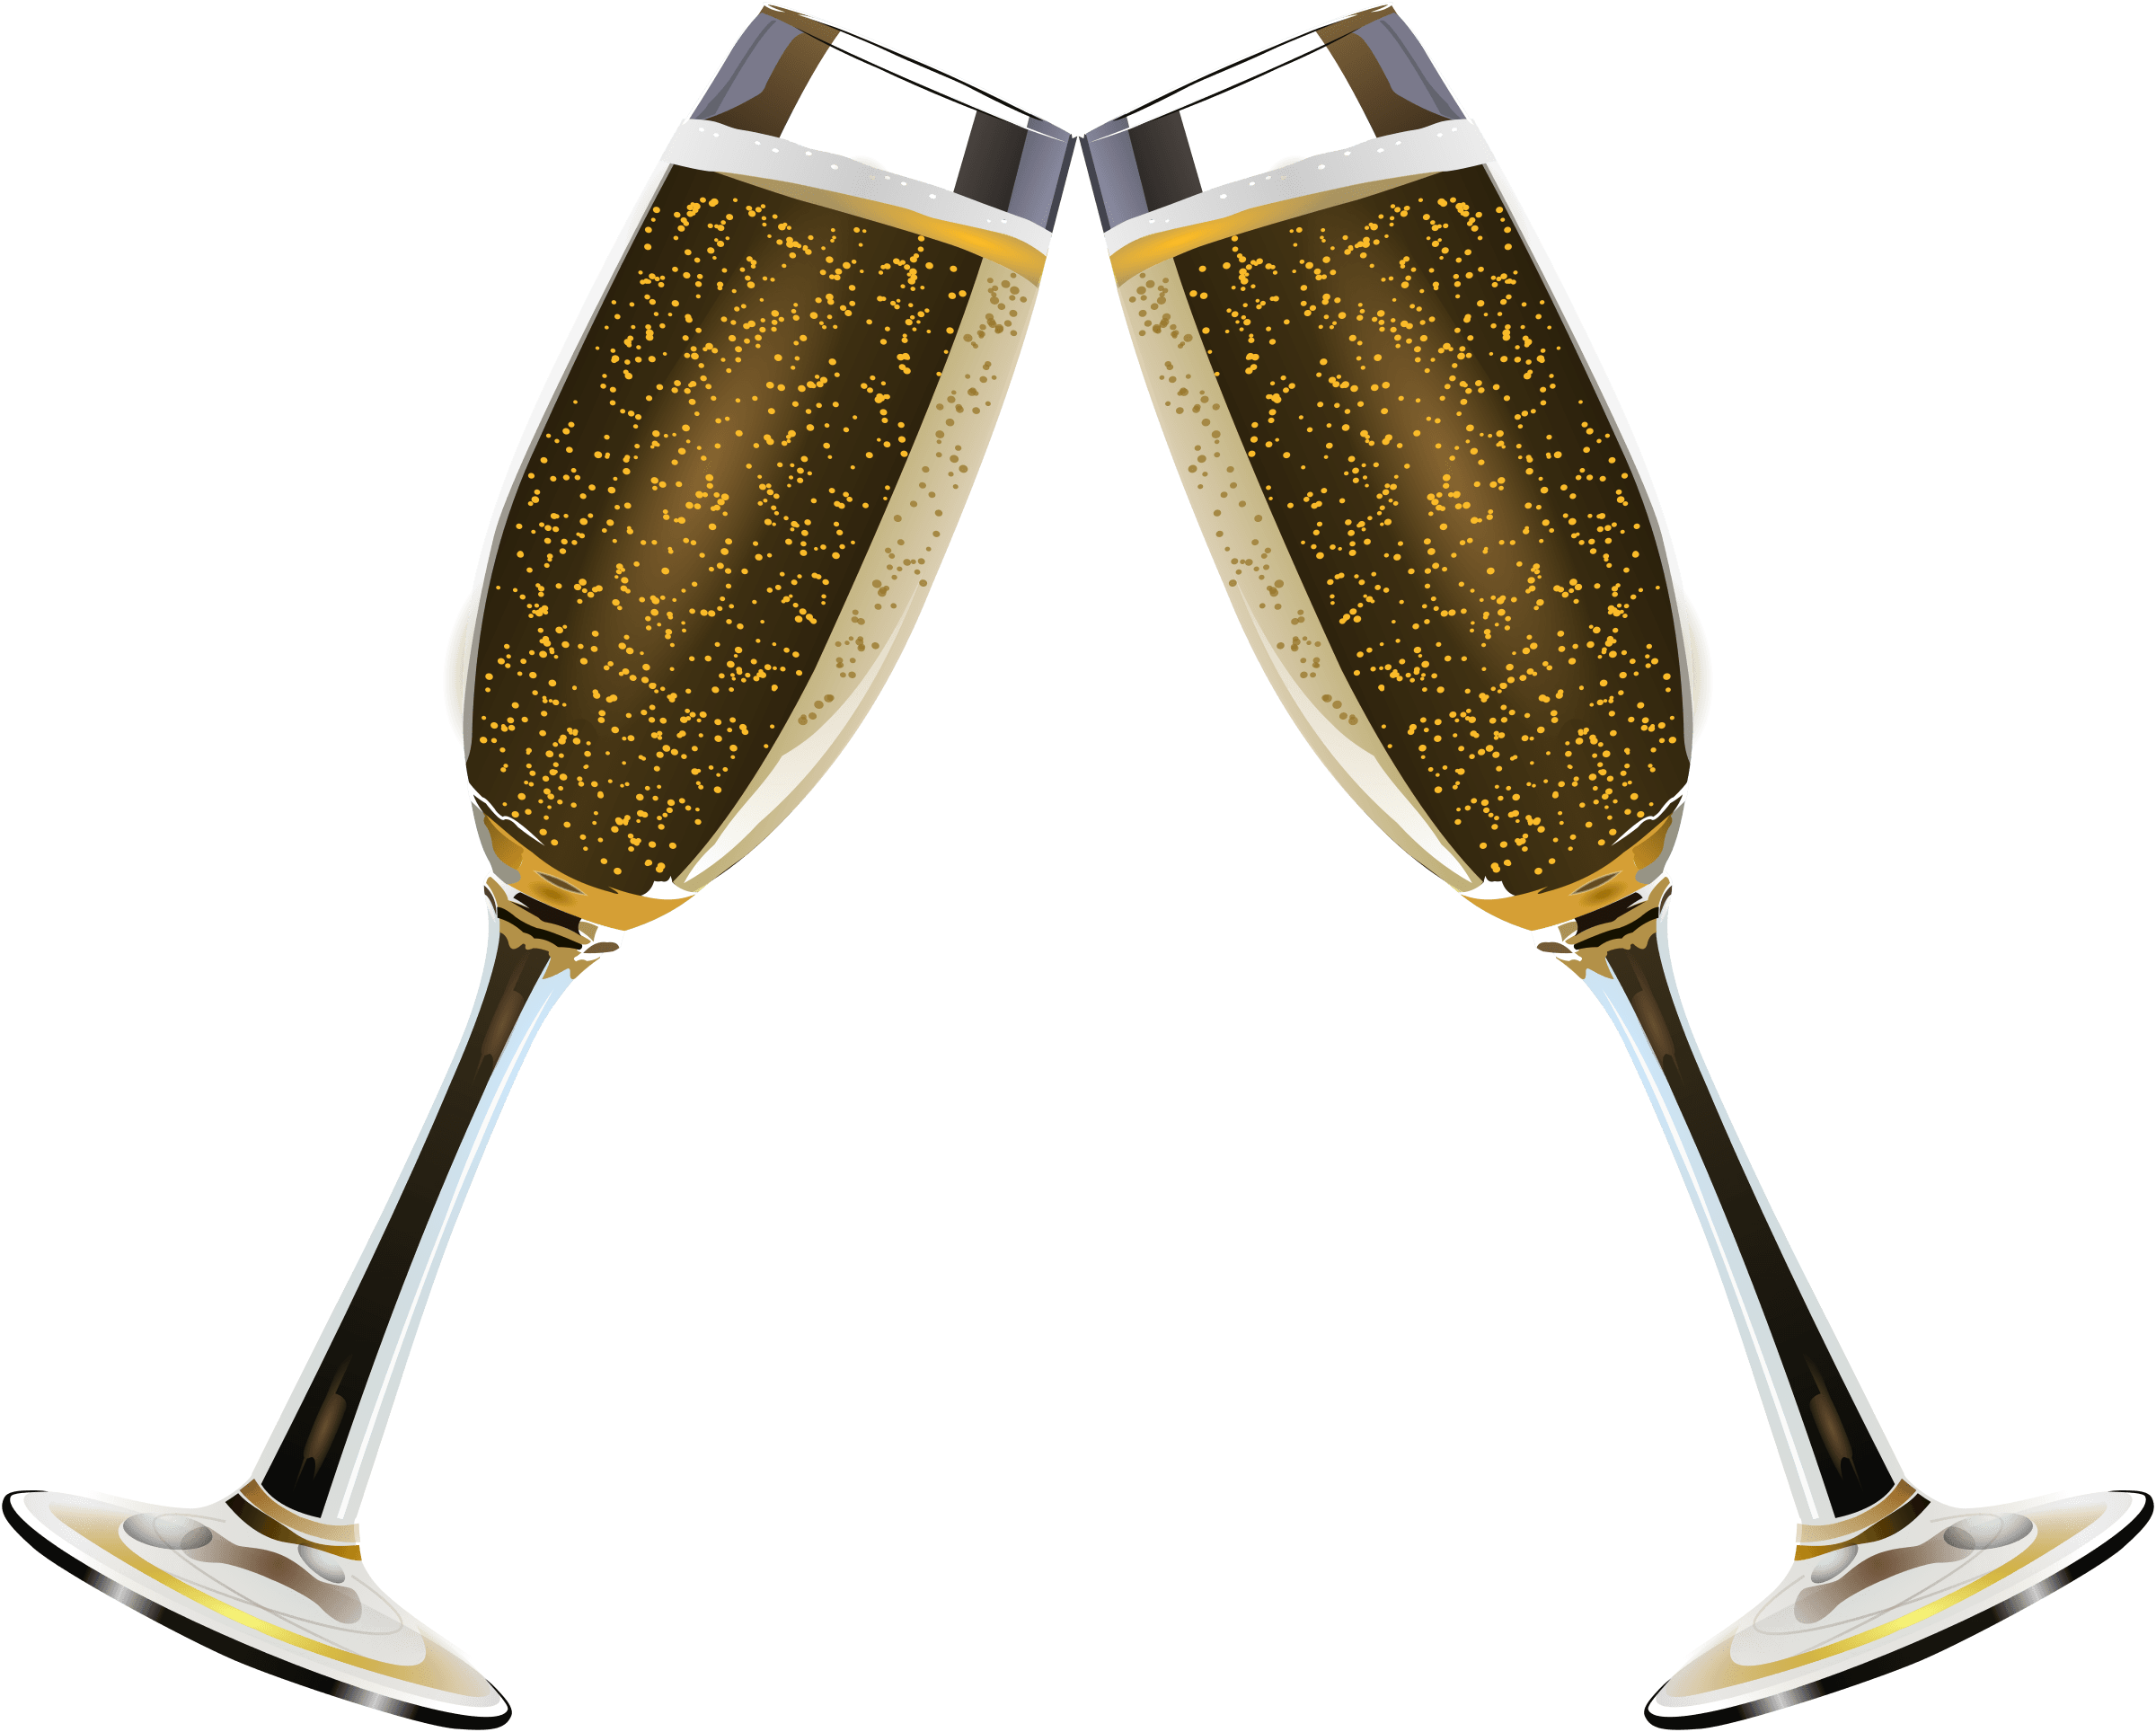 2400x1928 Champagne Duo Of Glasses Transparent Png